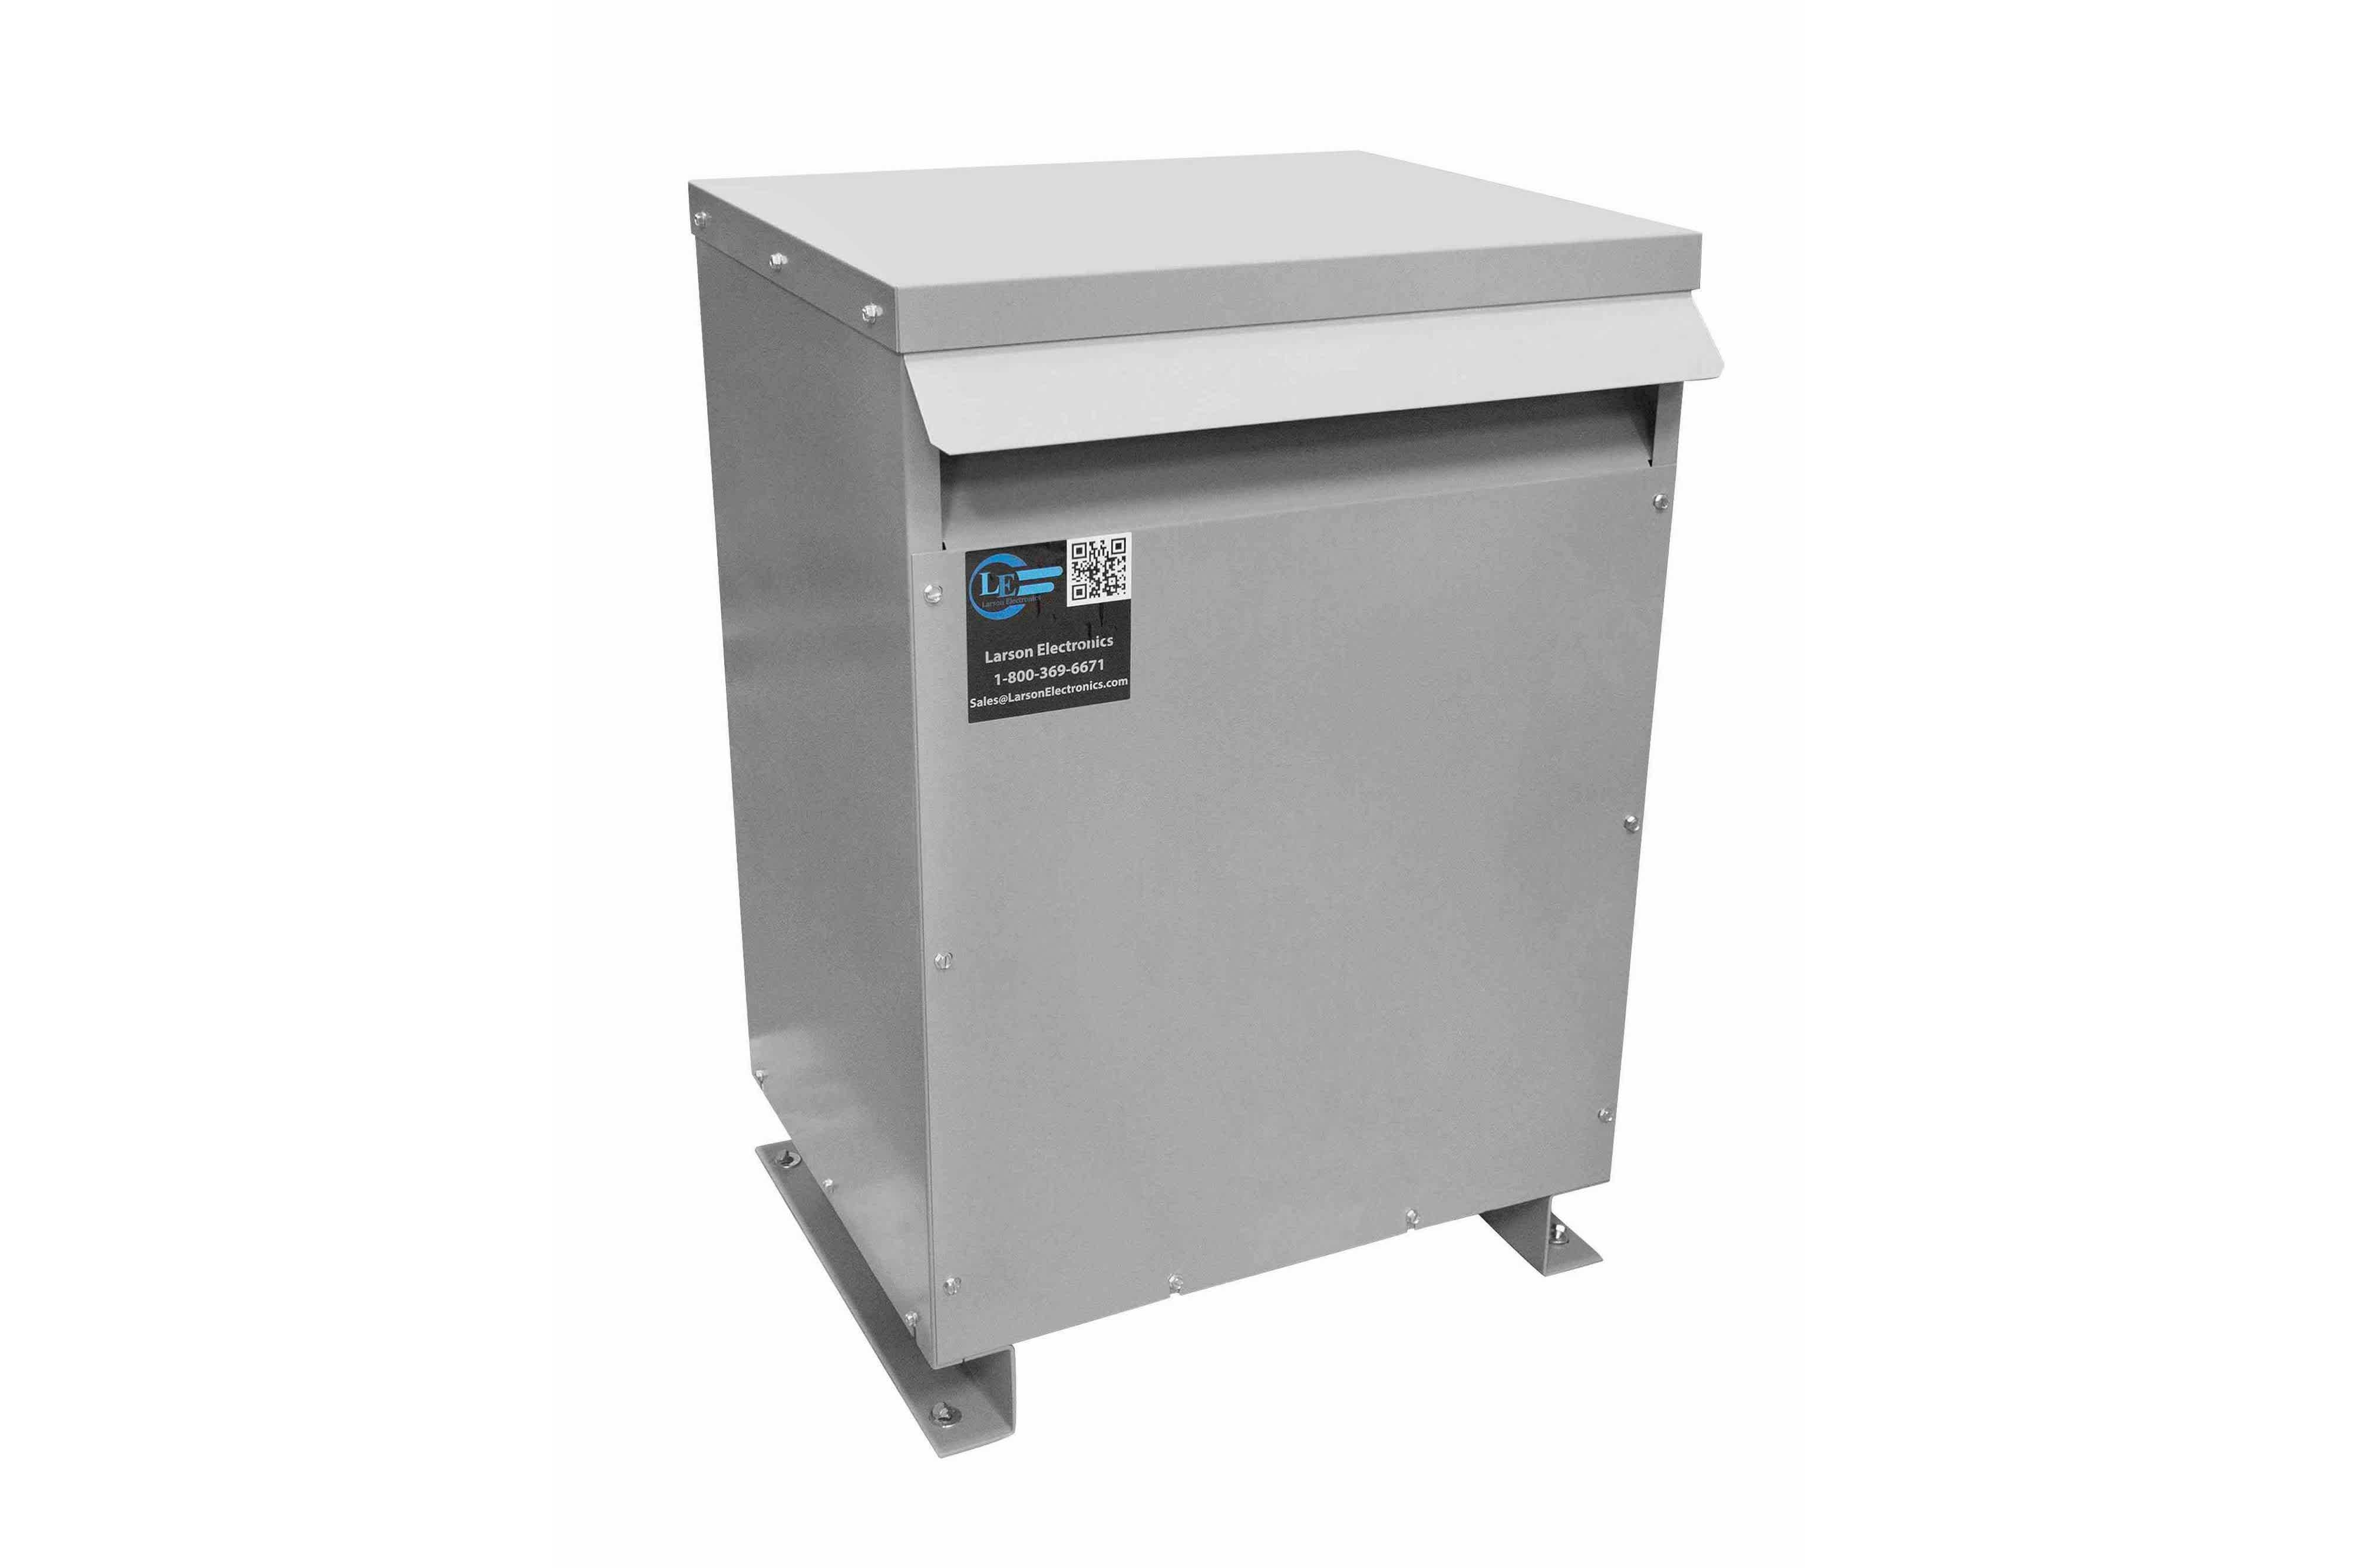 28 kVA 3PH DOE Transformer, 460V Delta Primary, 380Y/220 Wye-N Secondary, N3R, Ventilated, 60 Hz